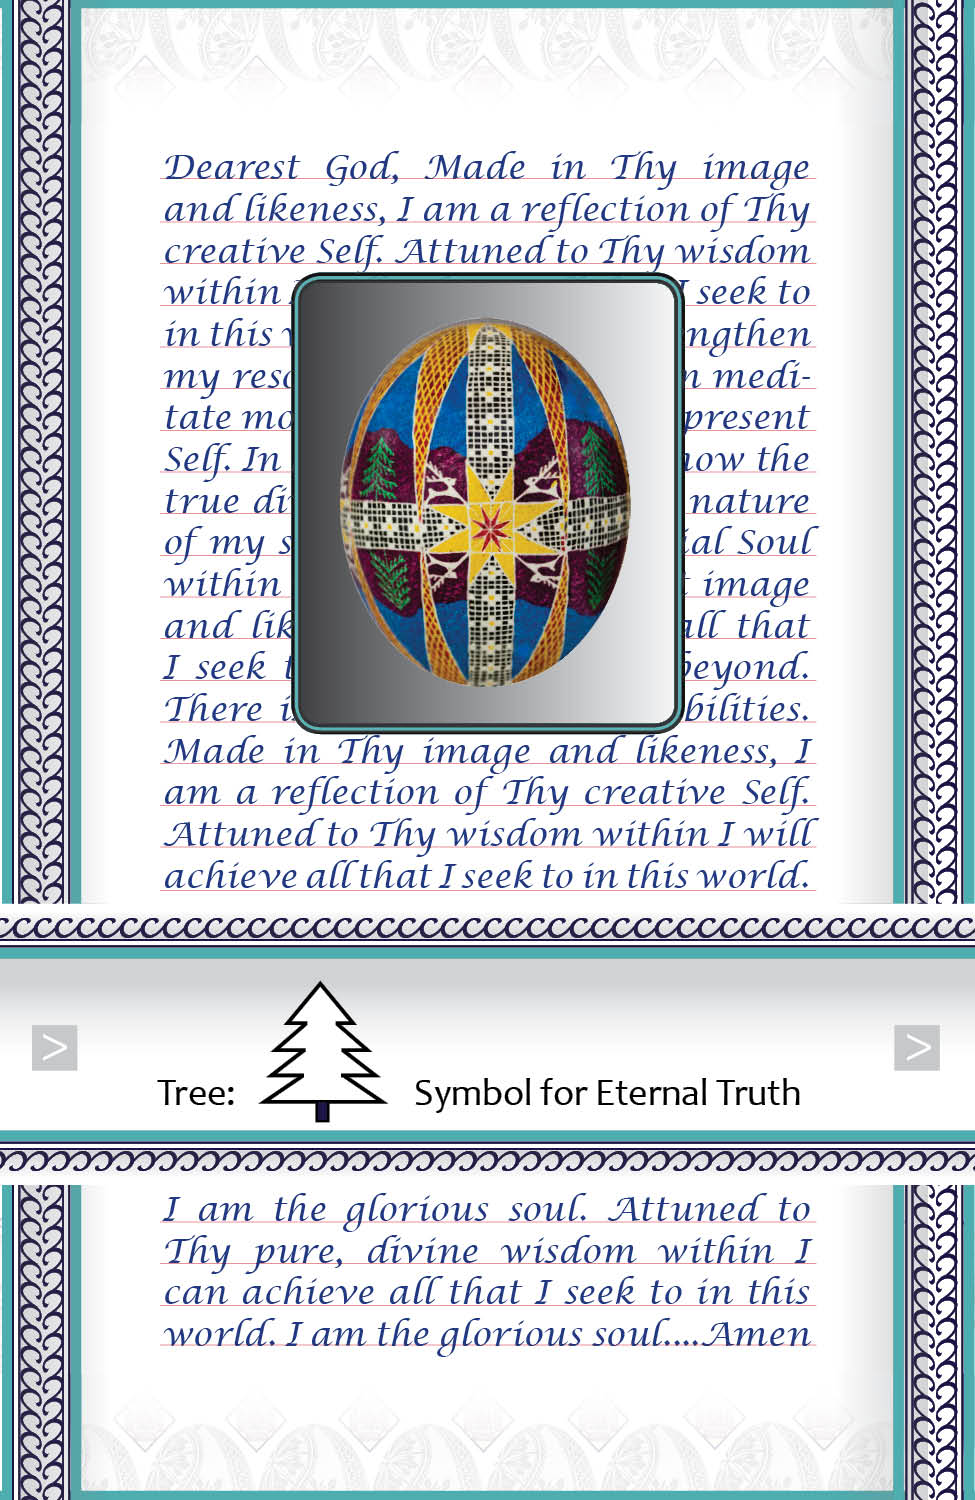 Affirmation for Eternal Truth